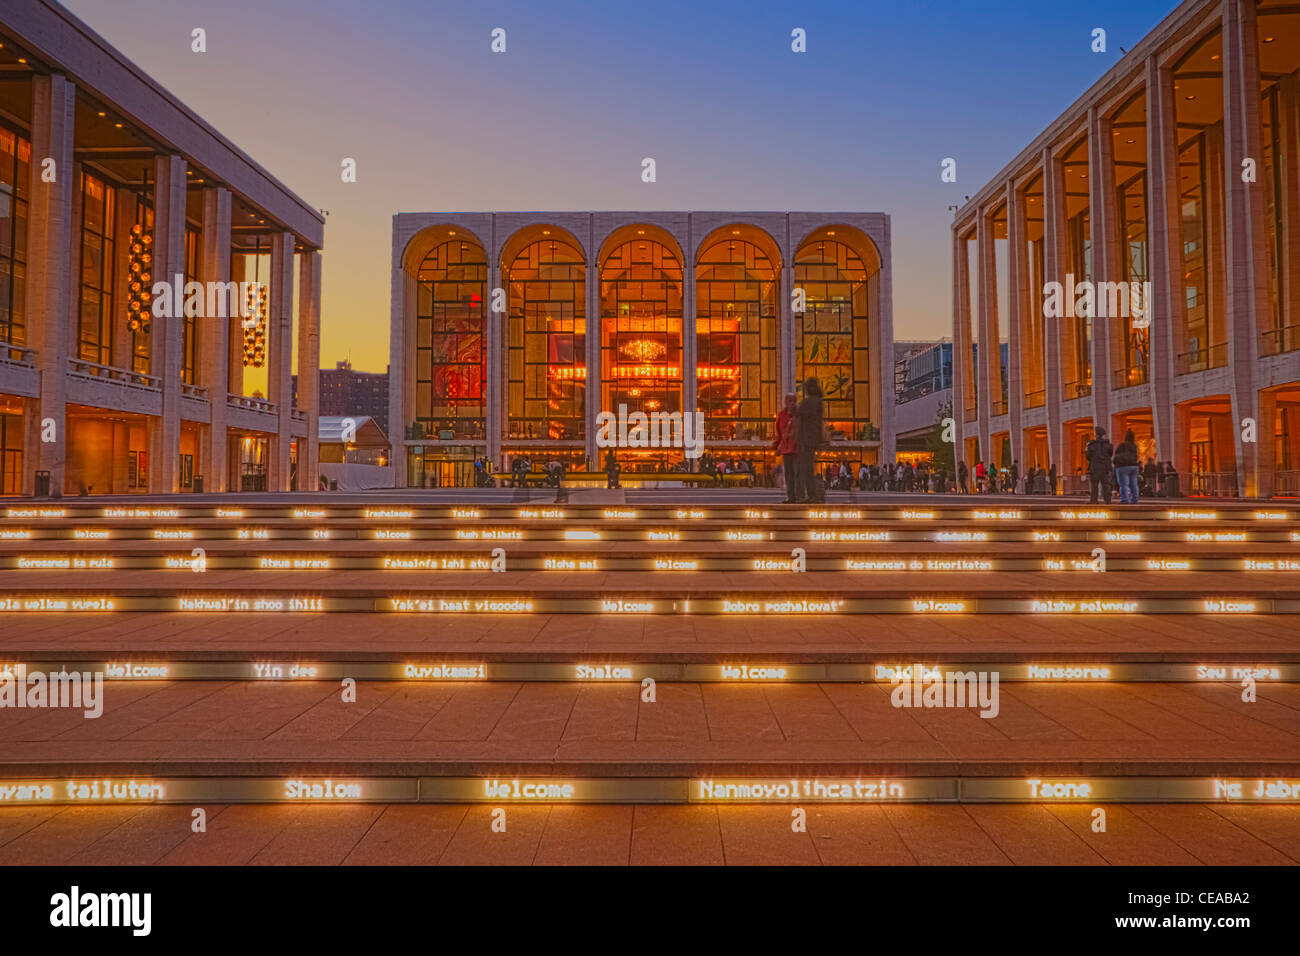 Welcome signs on the steps of the Lincoln Center for the Performing Arts - Stock Image